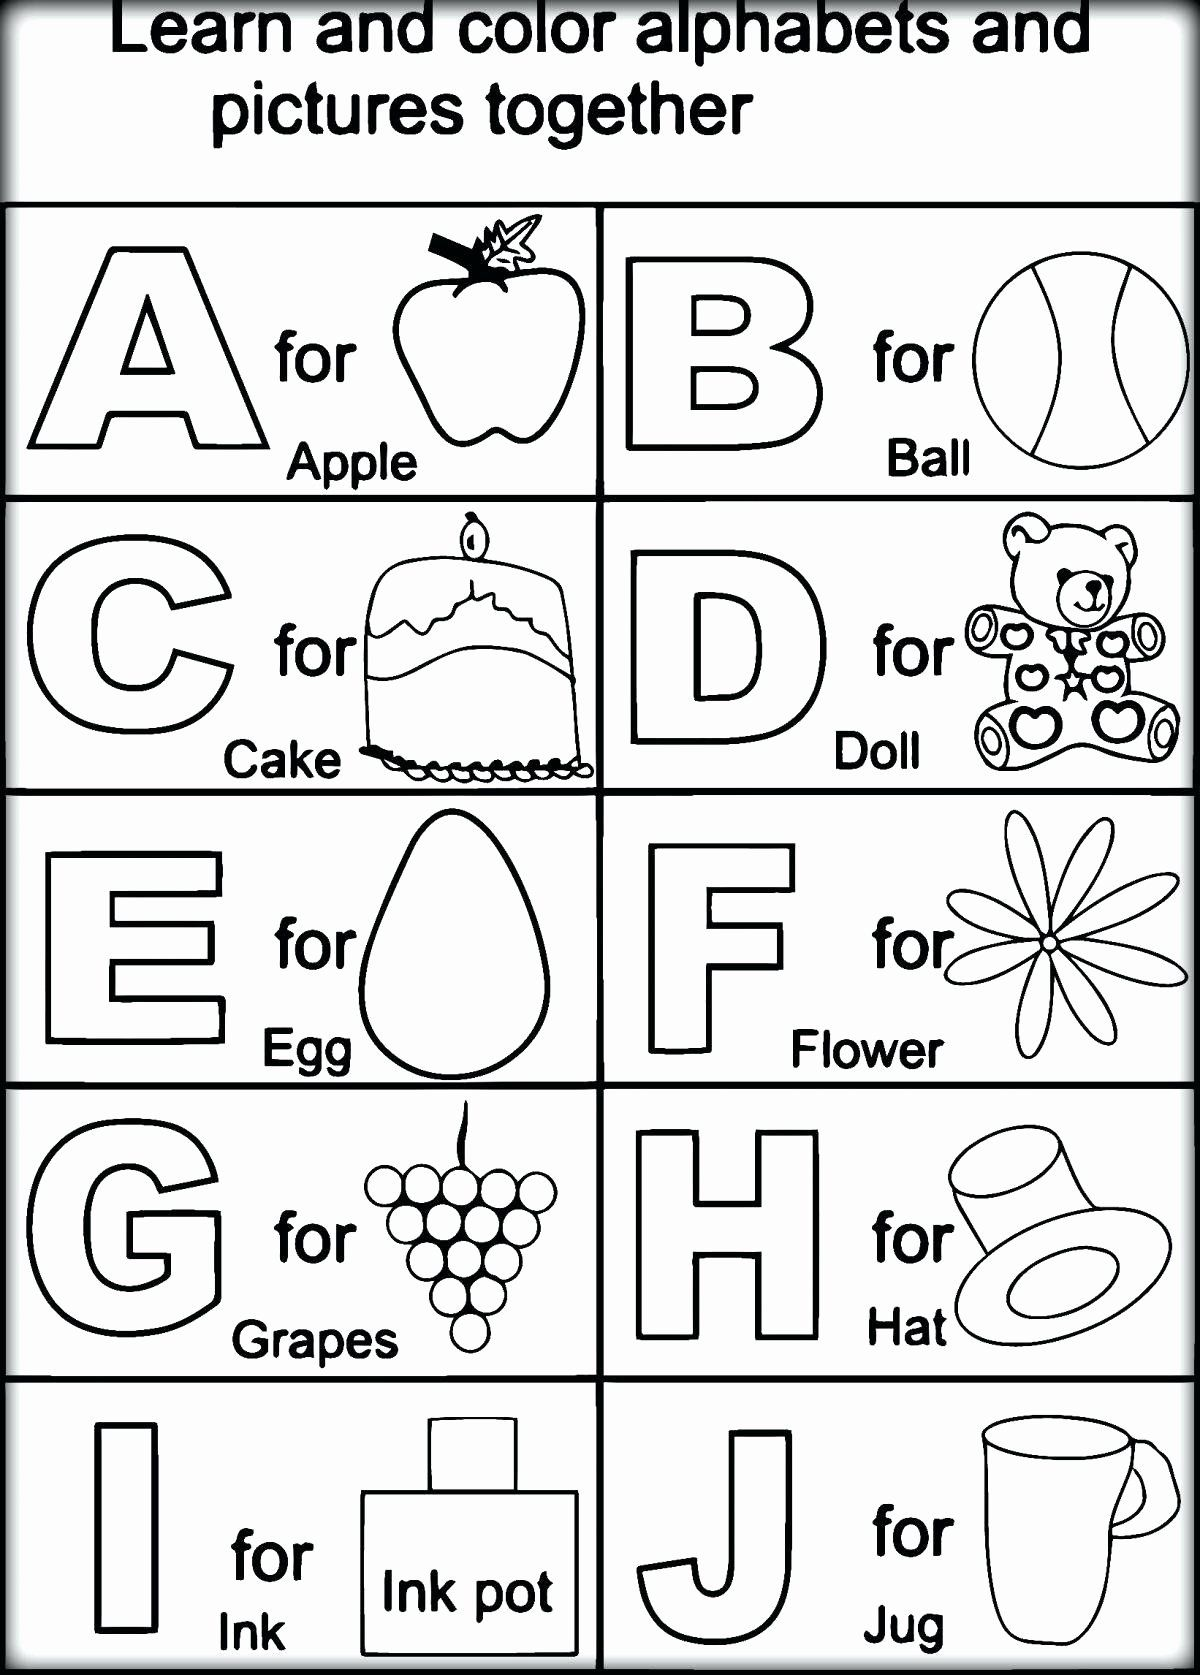 Count By Numbers Coloring Page Fresh Of Counting Flower